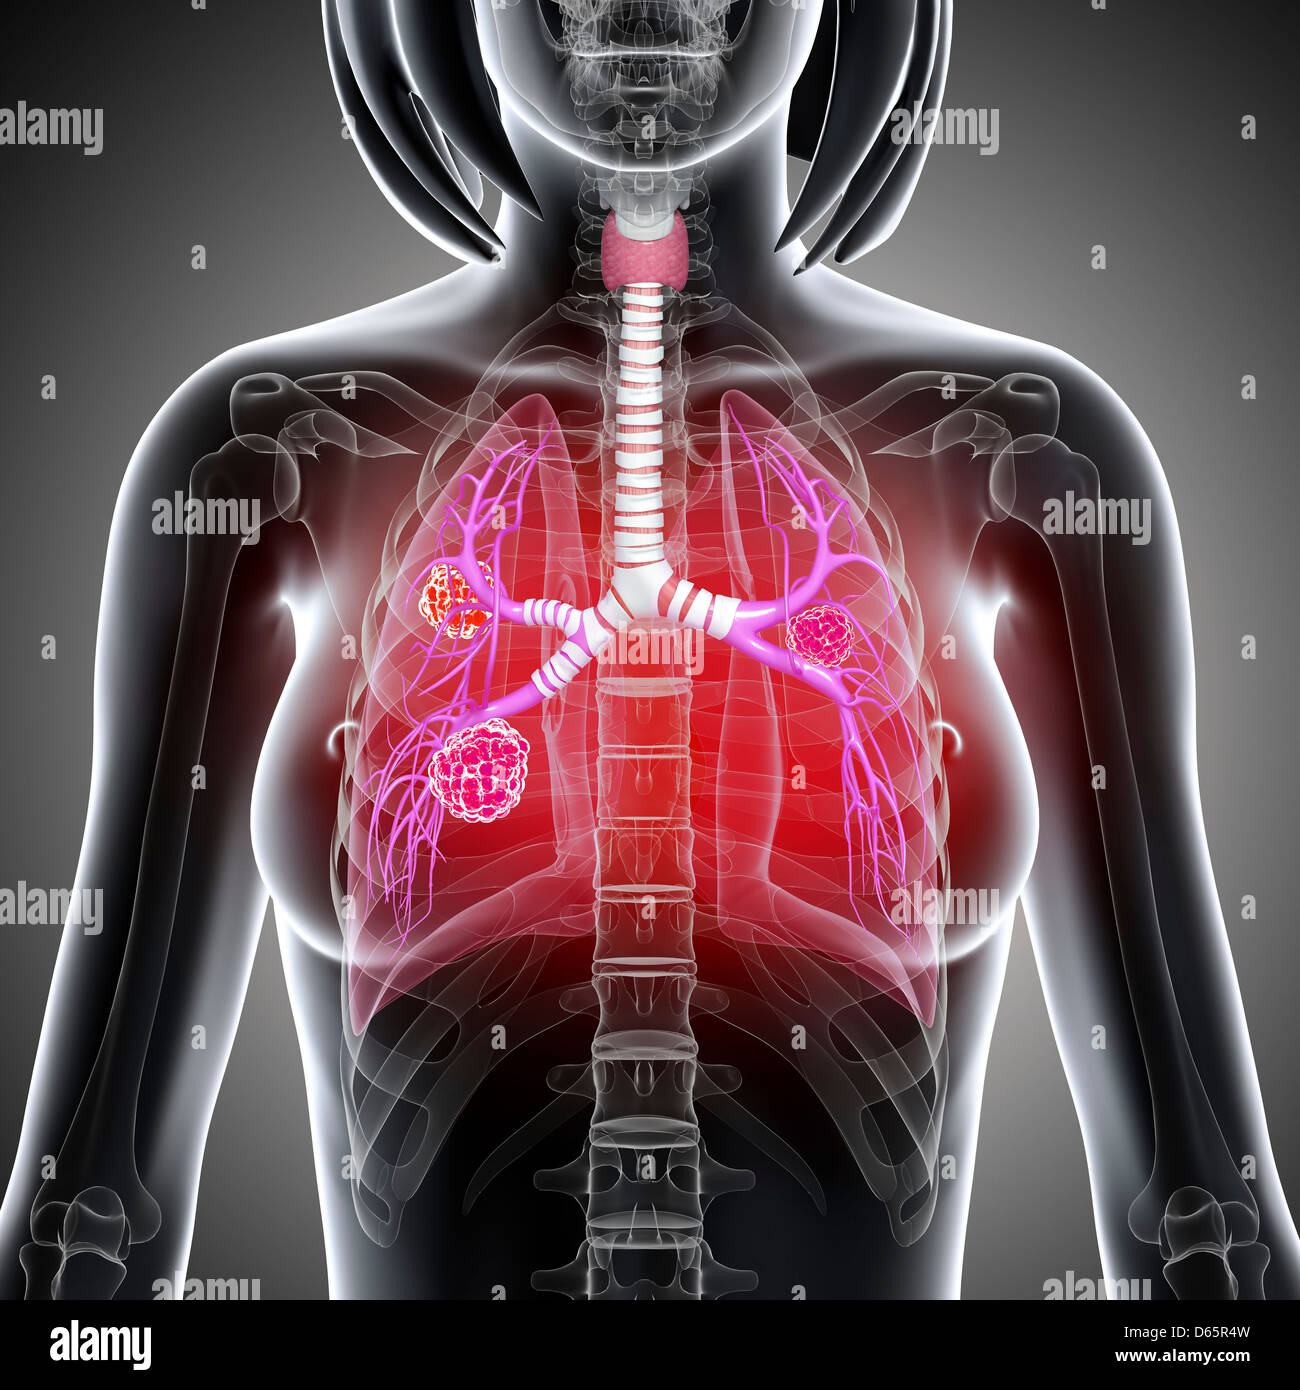 Female lung cancer, artwork Stock Photo: 55446969 - Alamy